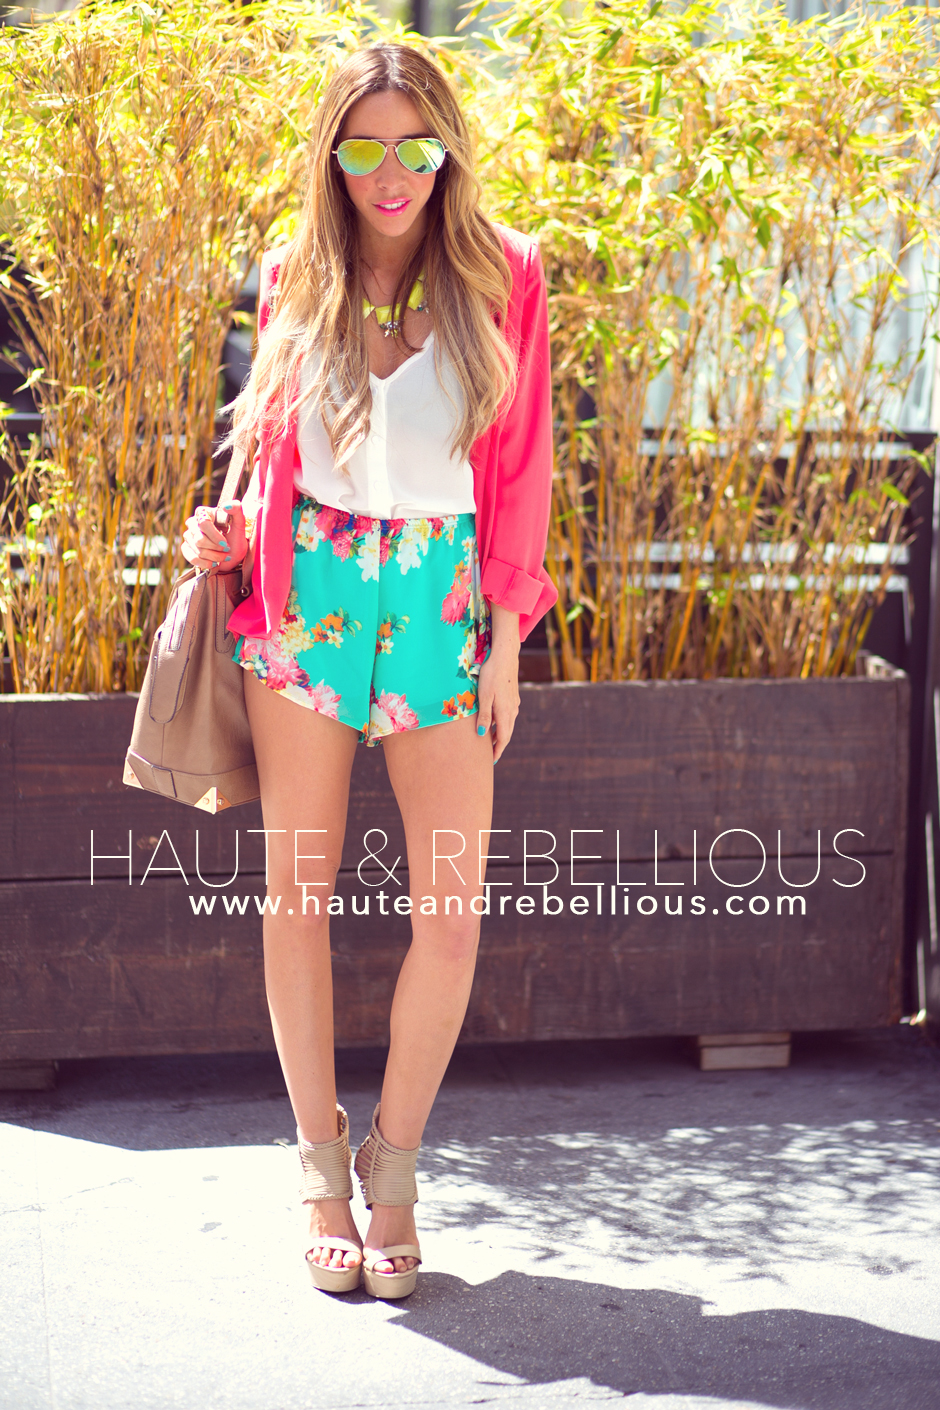 Haute & Rebellious Blog: FLORAL CHIFFON SHORTS